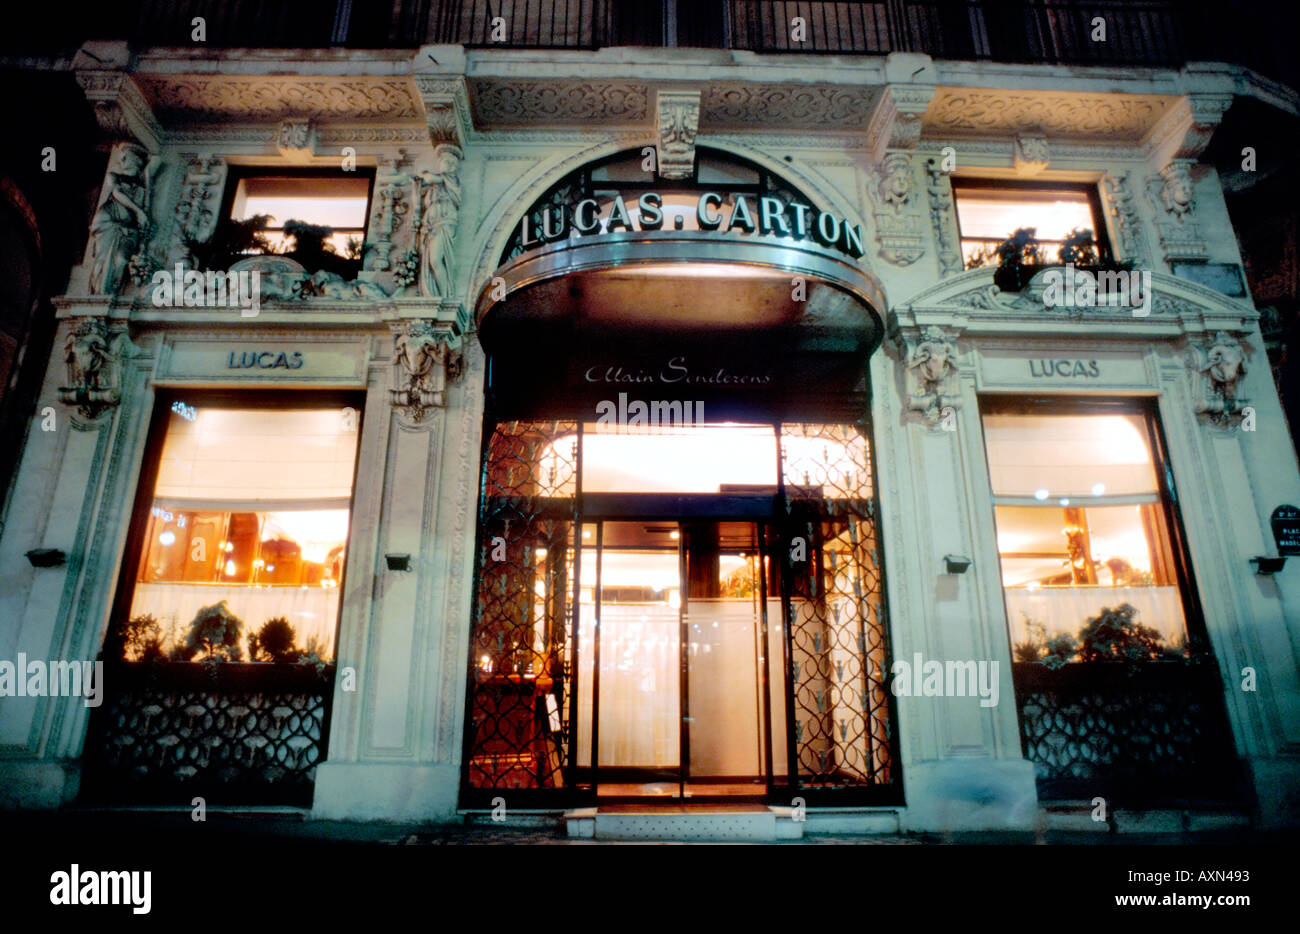 France paris french restaurant haute cuisine restaurant for Restaurant cuisine francaise paris